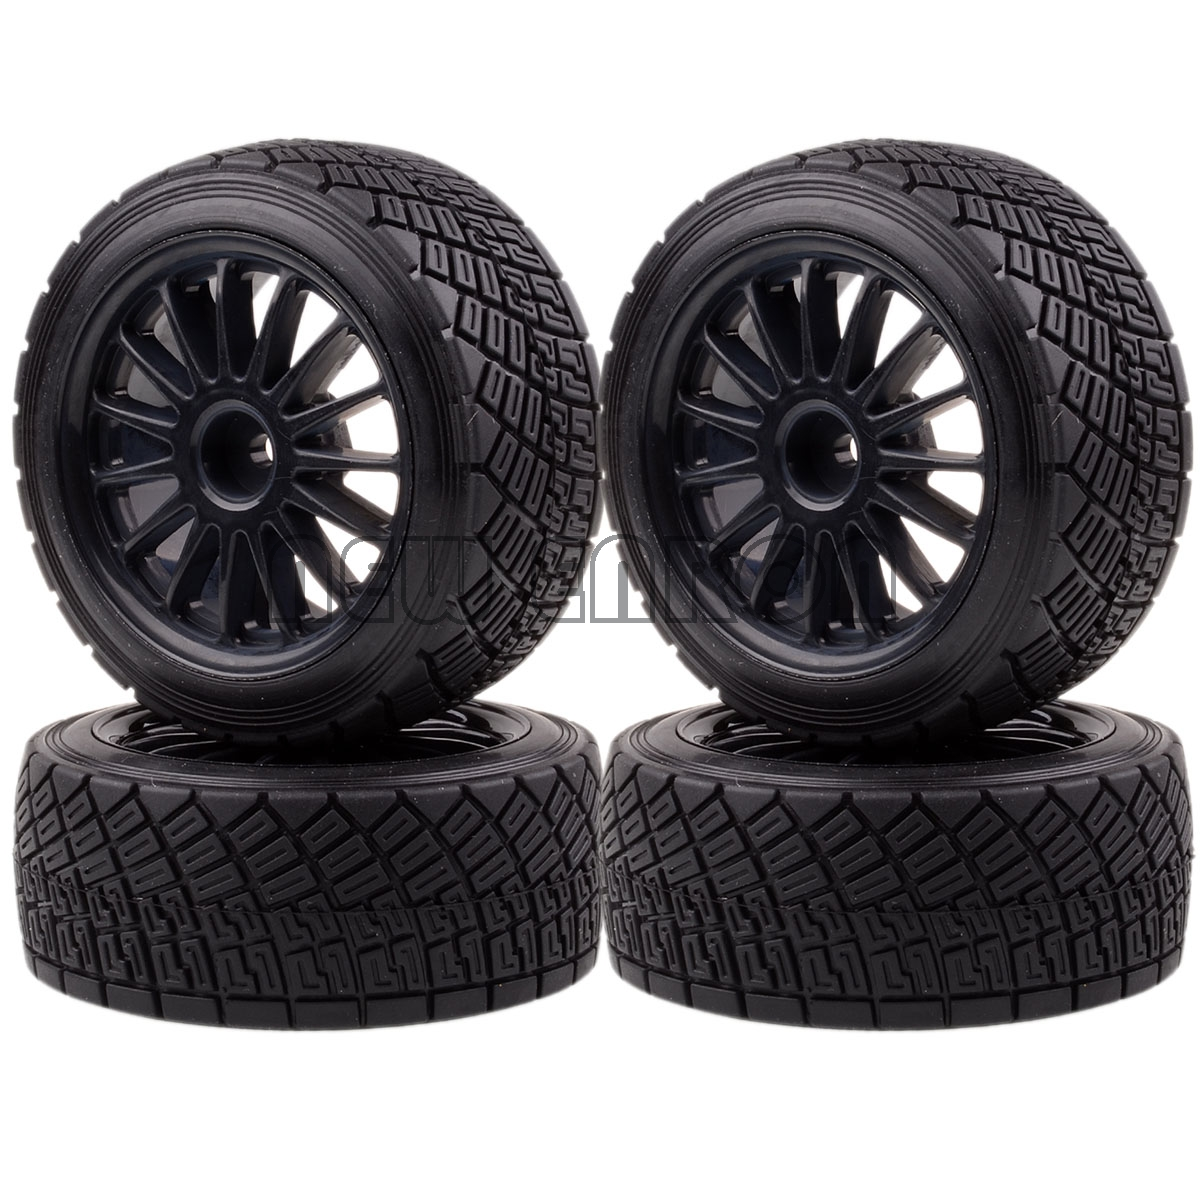 """Image 2 - NEW ENRON RC CAR PART RC 1/10 RC TIRES 4PCS 2.2"""" WHEEL Rim & Tires Tyre Fit 1/10 HPI WR8 Flux Rally 3.0 110697 94177-in Parts & Accessories from Toys & Hobbies"""